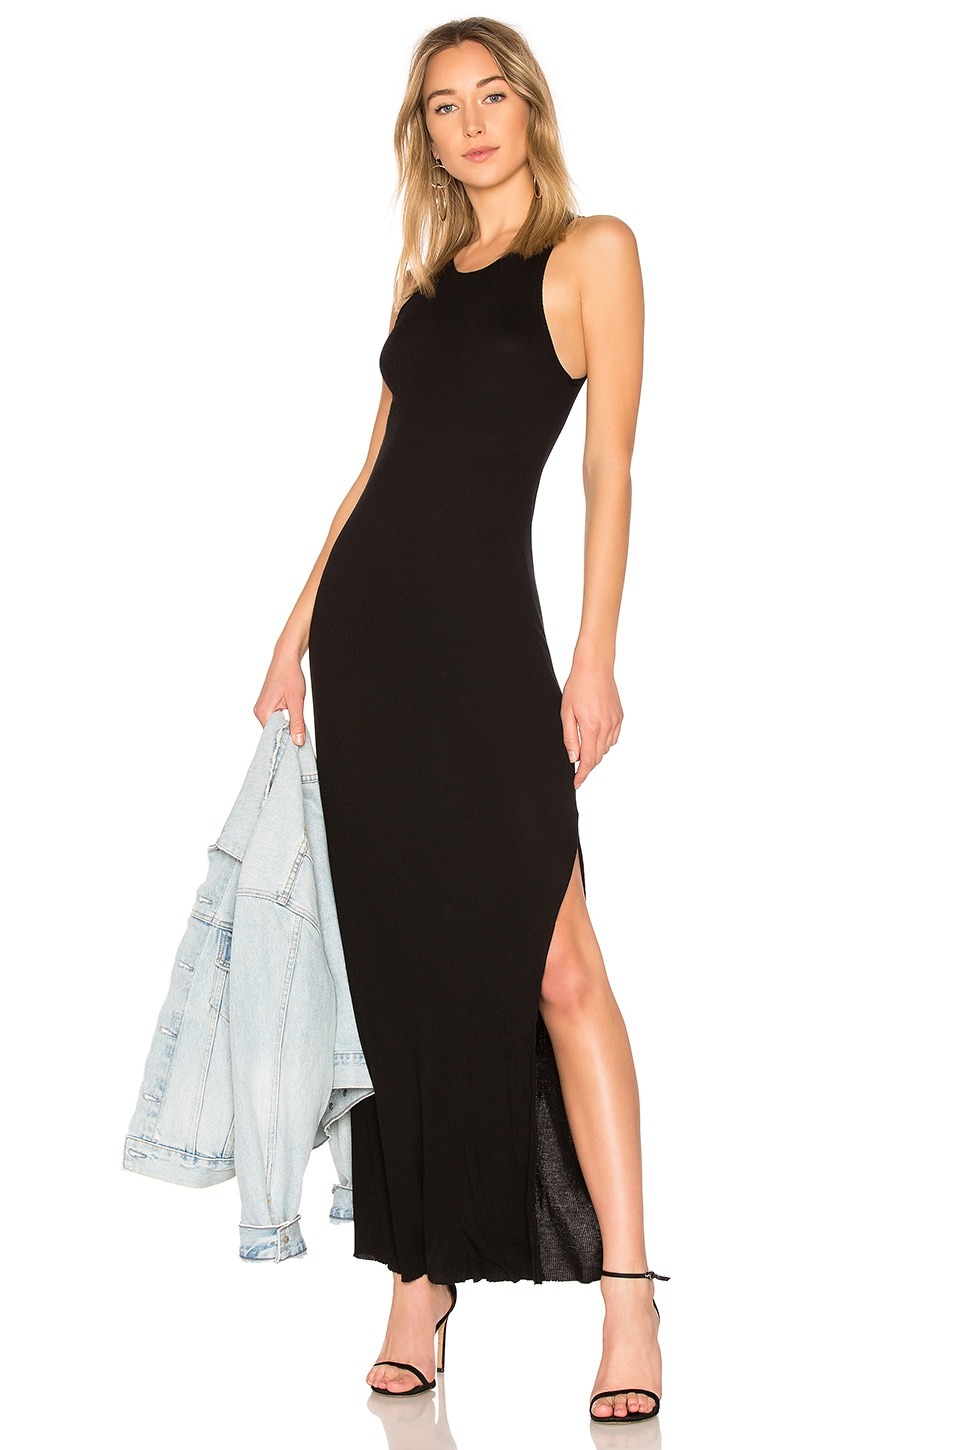 Cotton Citizen COTTON CITIZEN MELBOURNE TANK MIDI DRESS WITH SLIT IN BLACK.